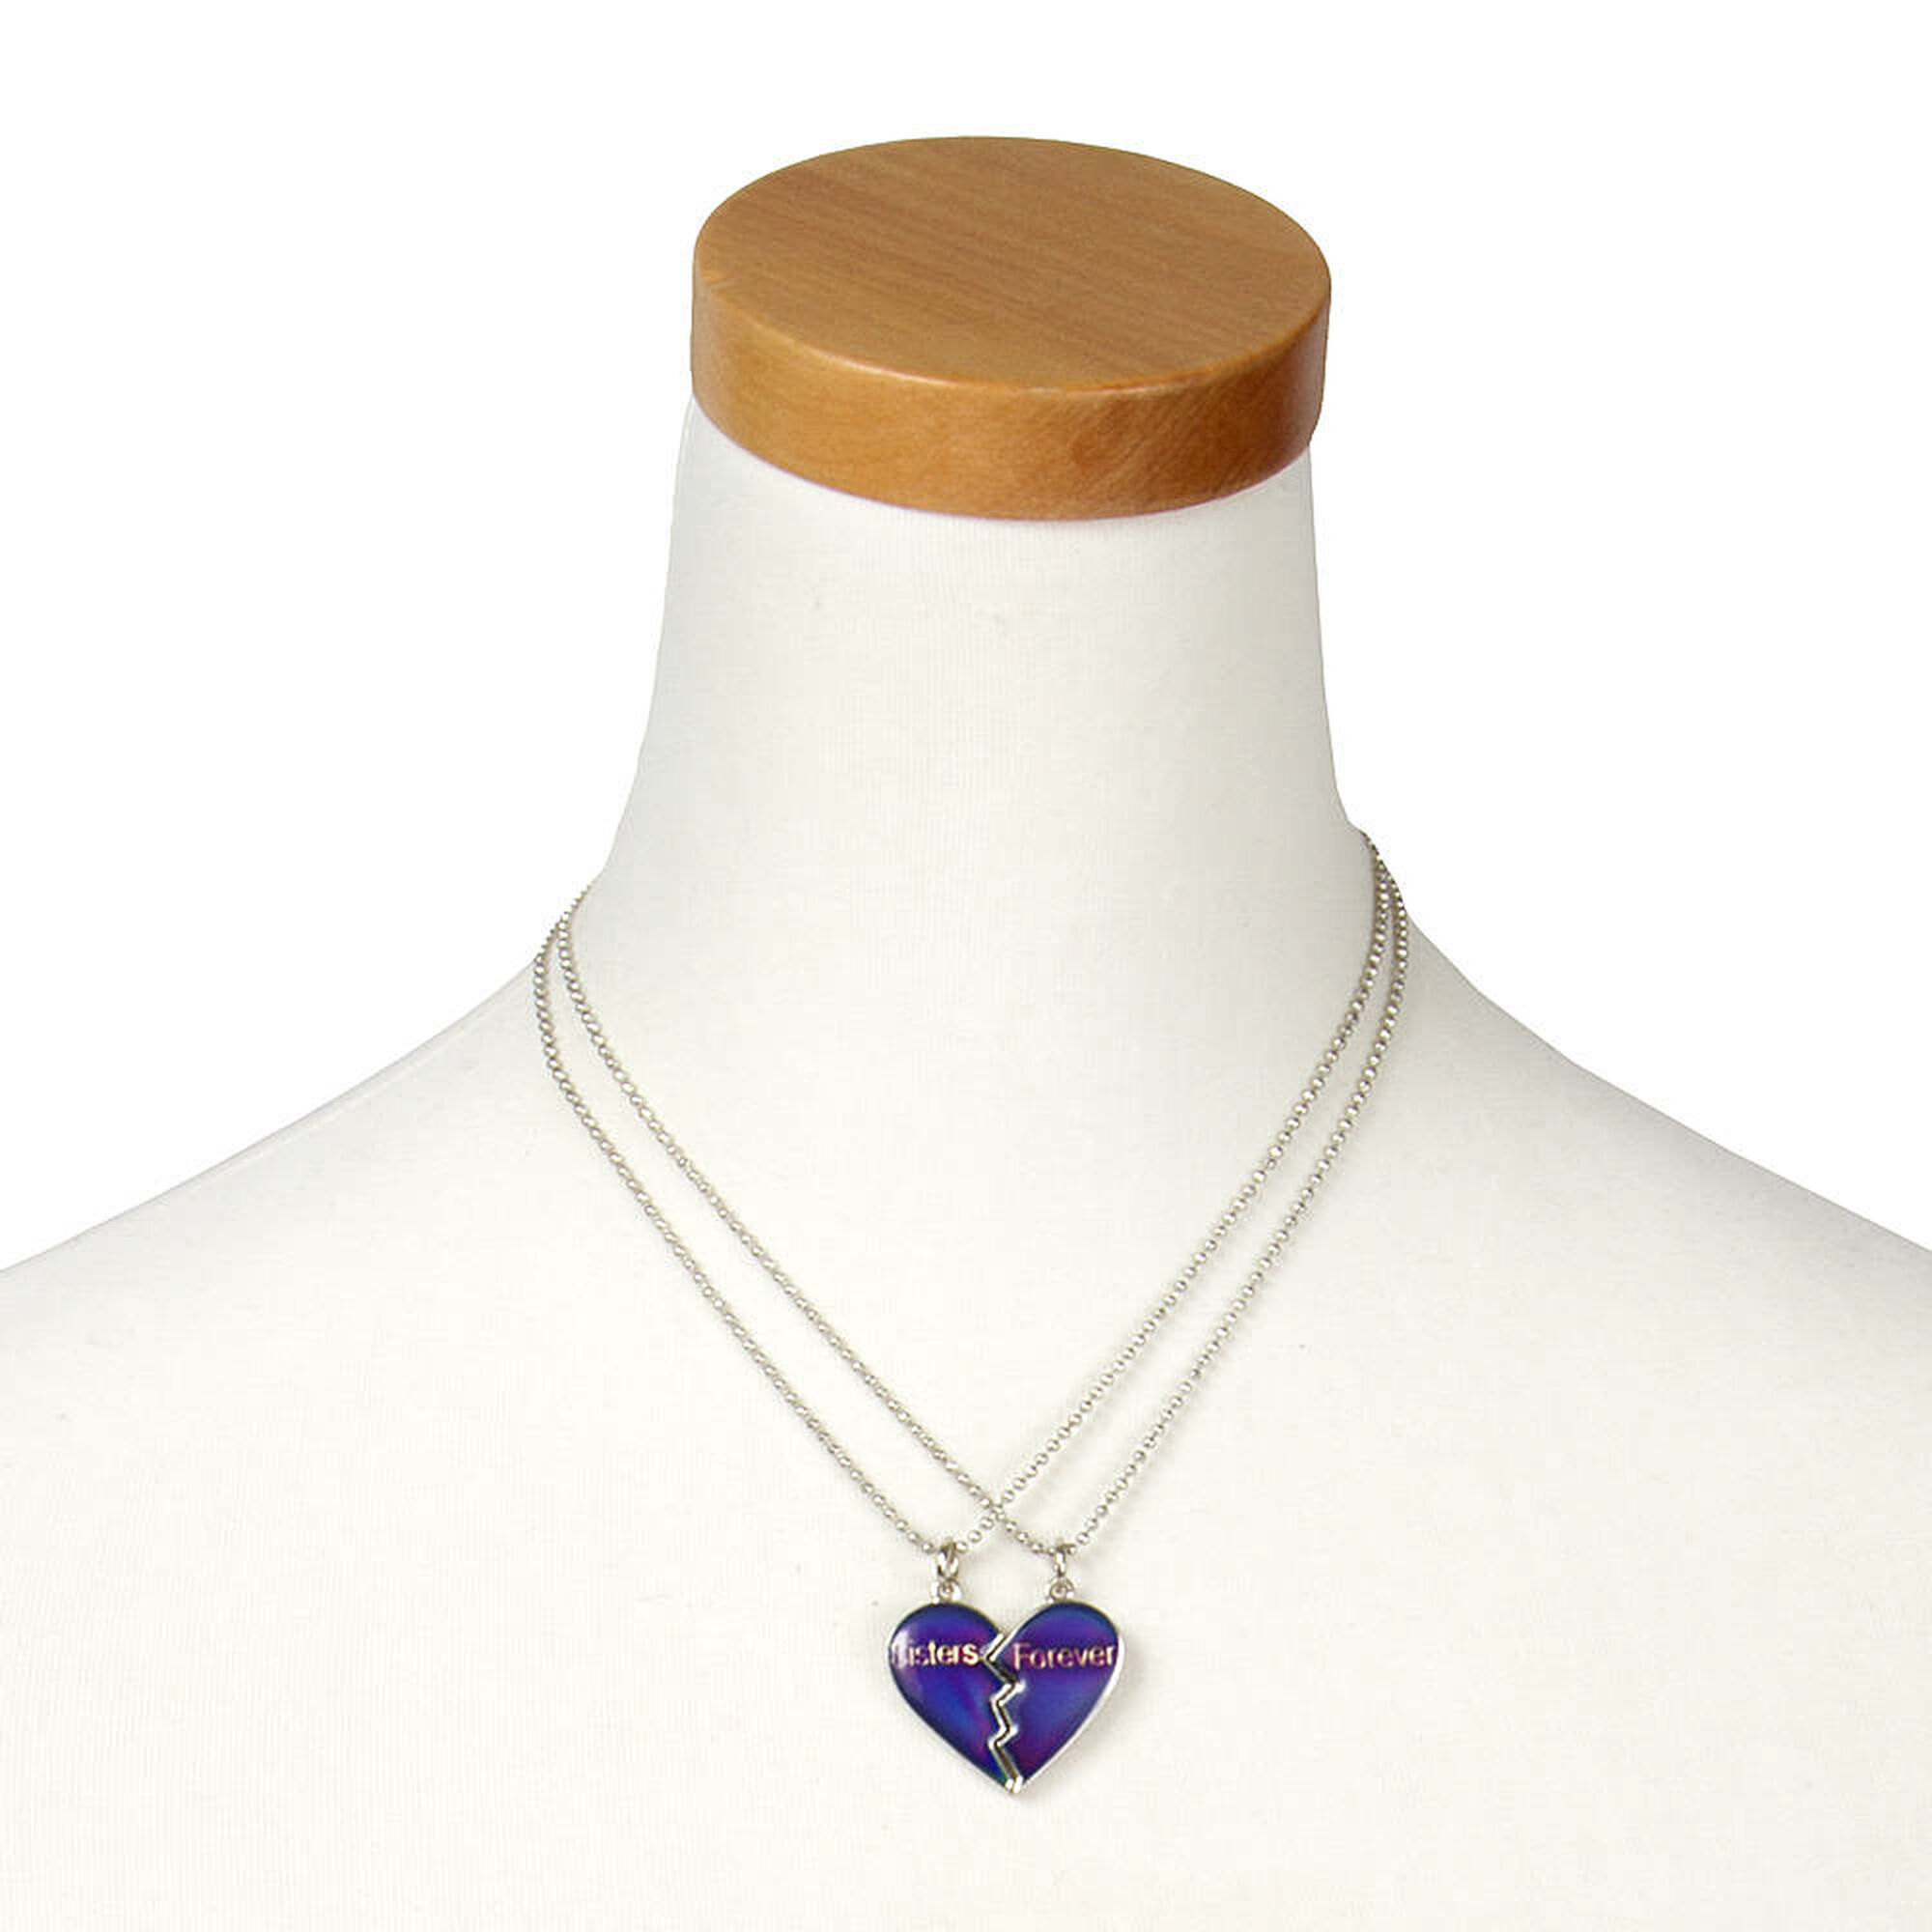 8290ce8927 Sisters Forever Mood Heart Pendant Necklaces | Claire's US